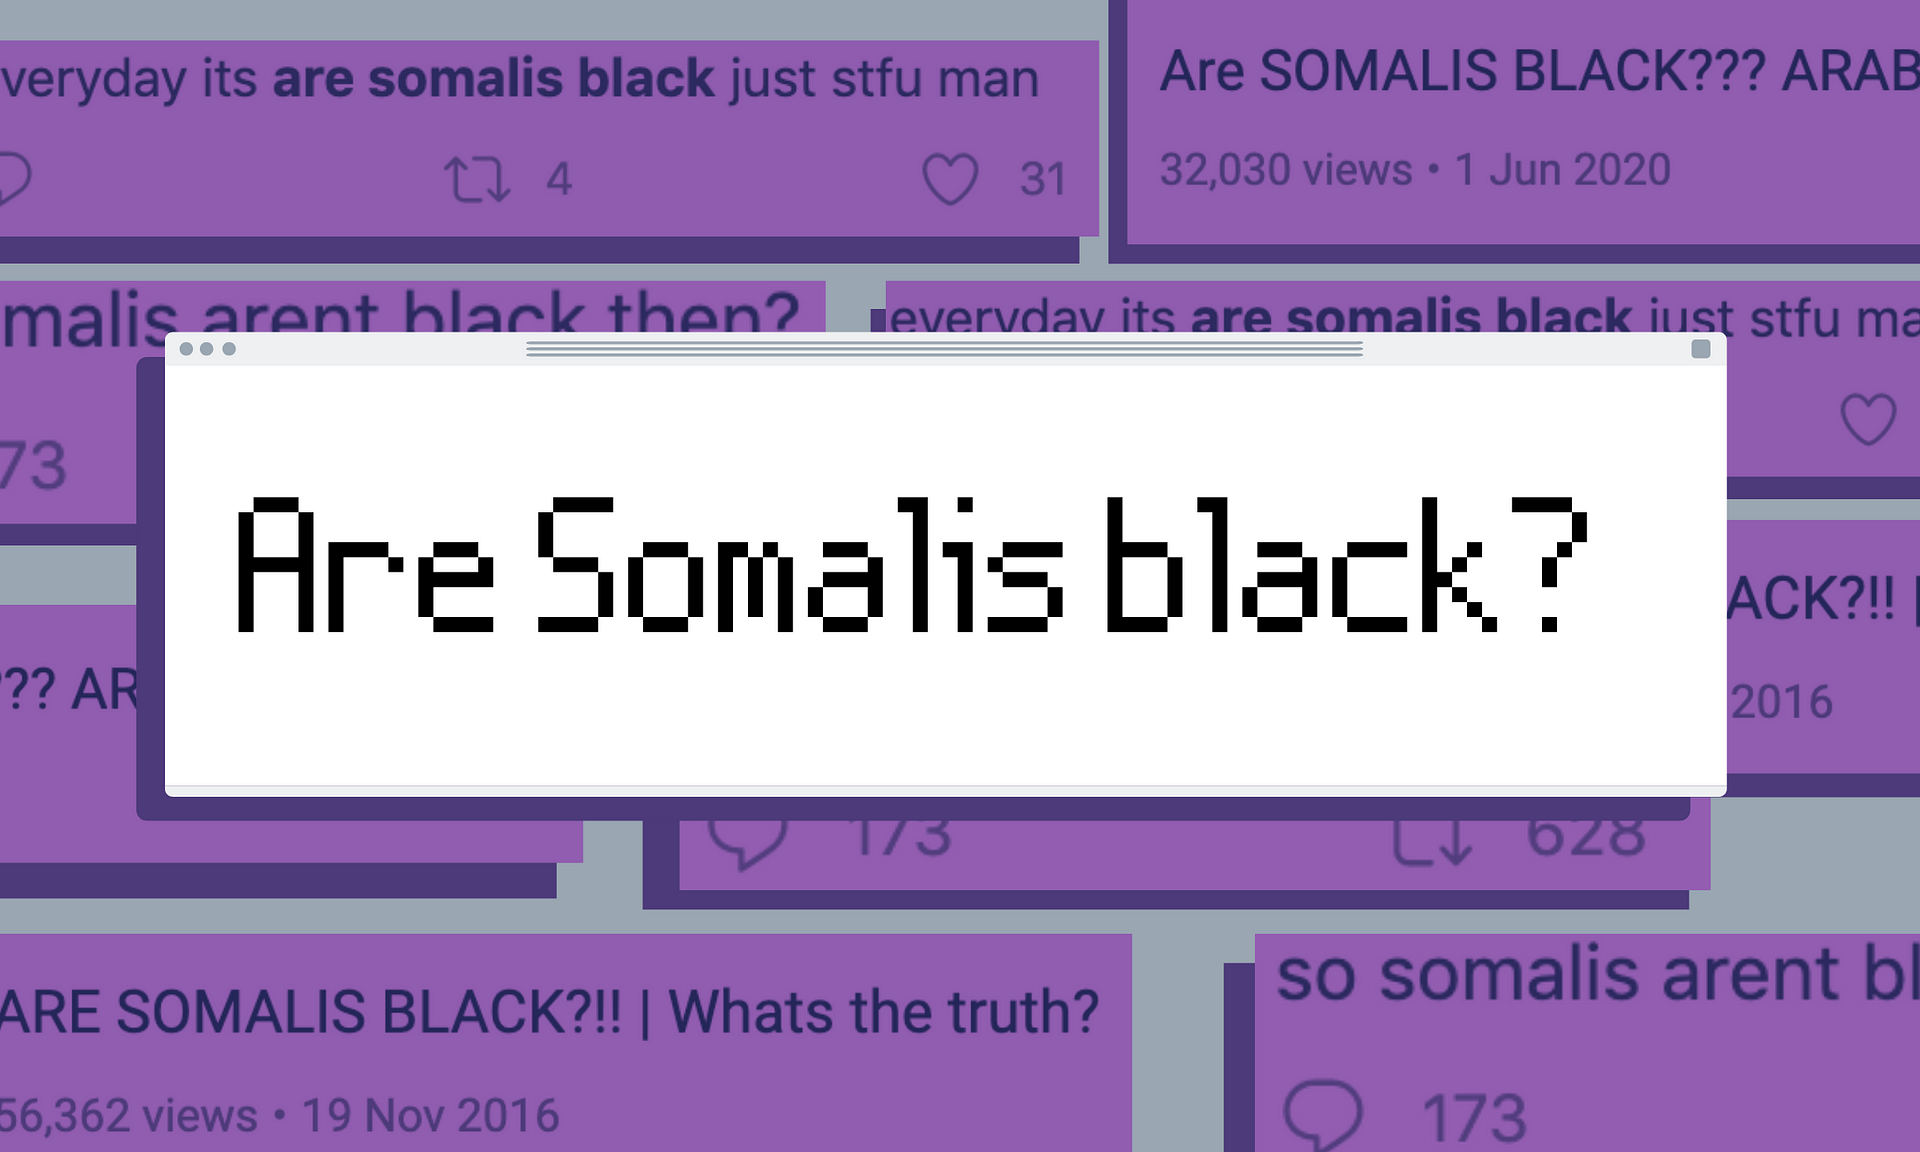 We need to unpack the damaging 'Are Somalis black?' rhetoric